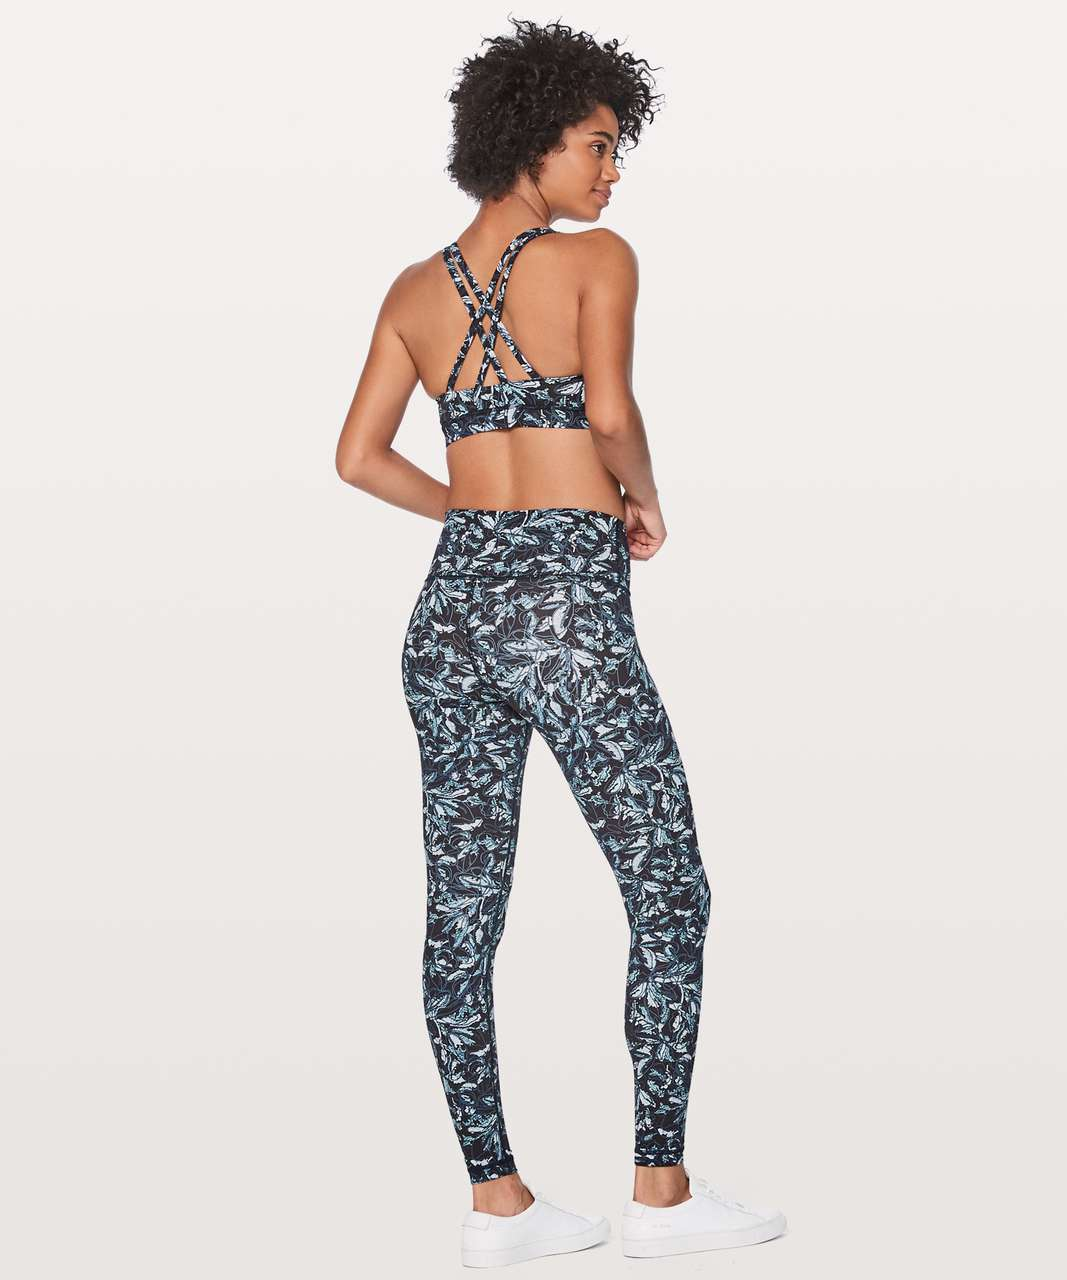 Lululemon Energy Bra - Embellished Multi